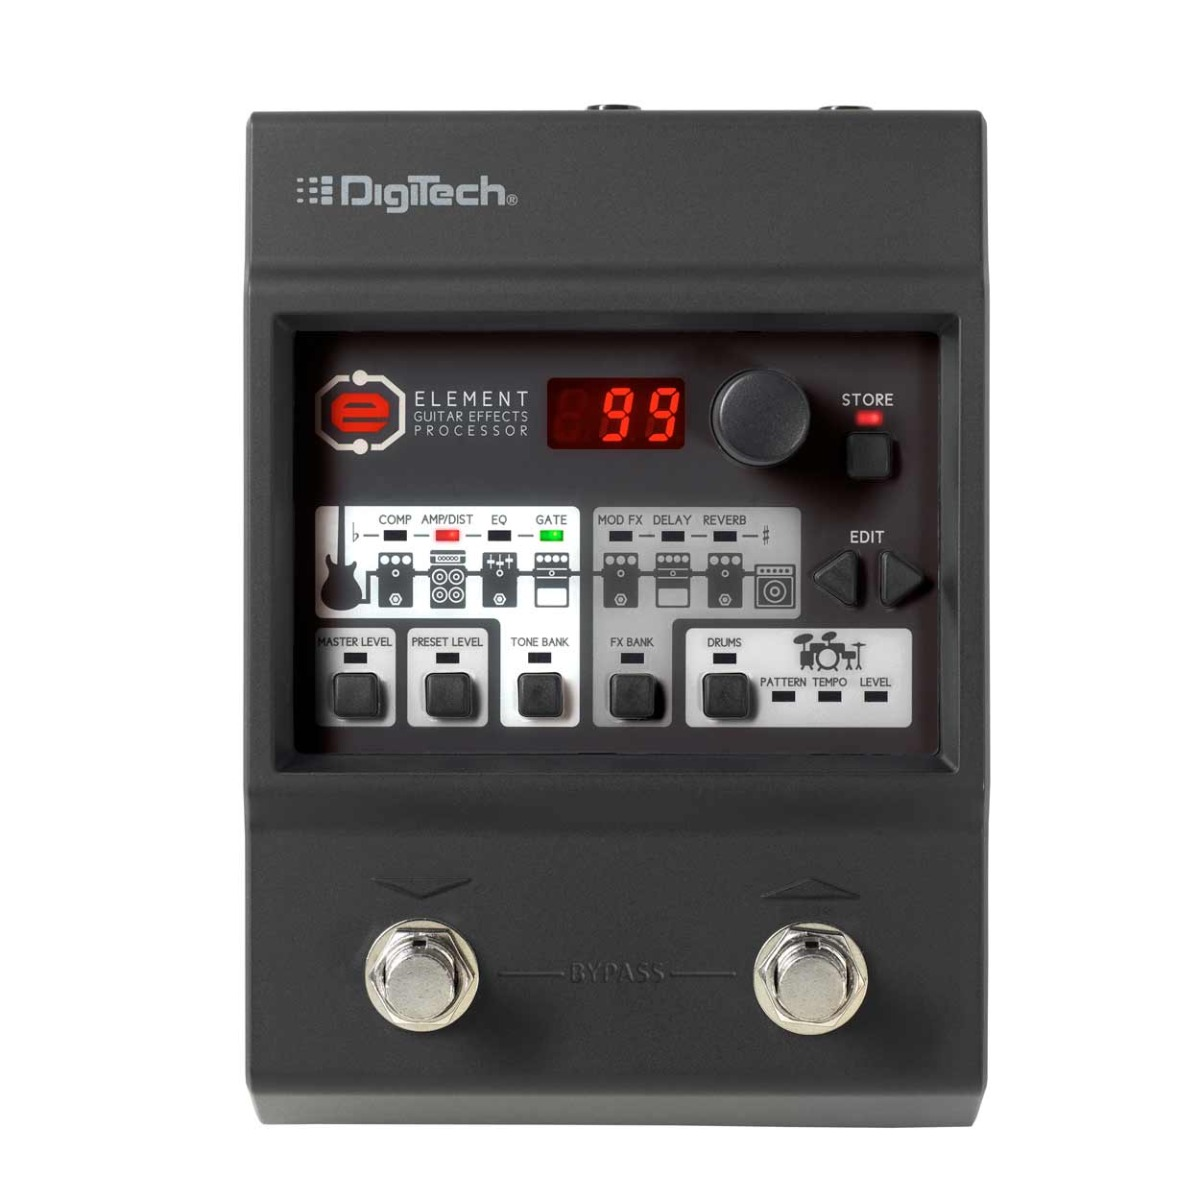 Digitech Element guitar-multieffekt-pedal